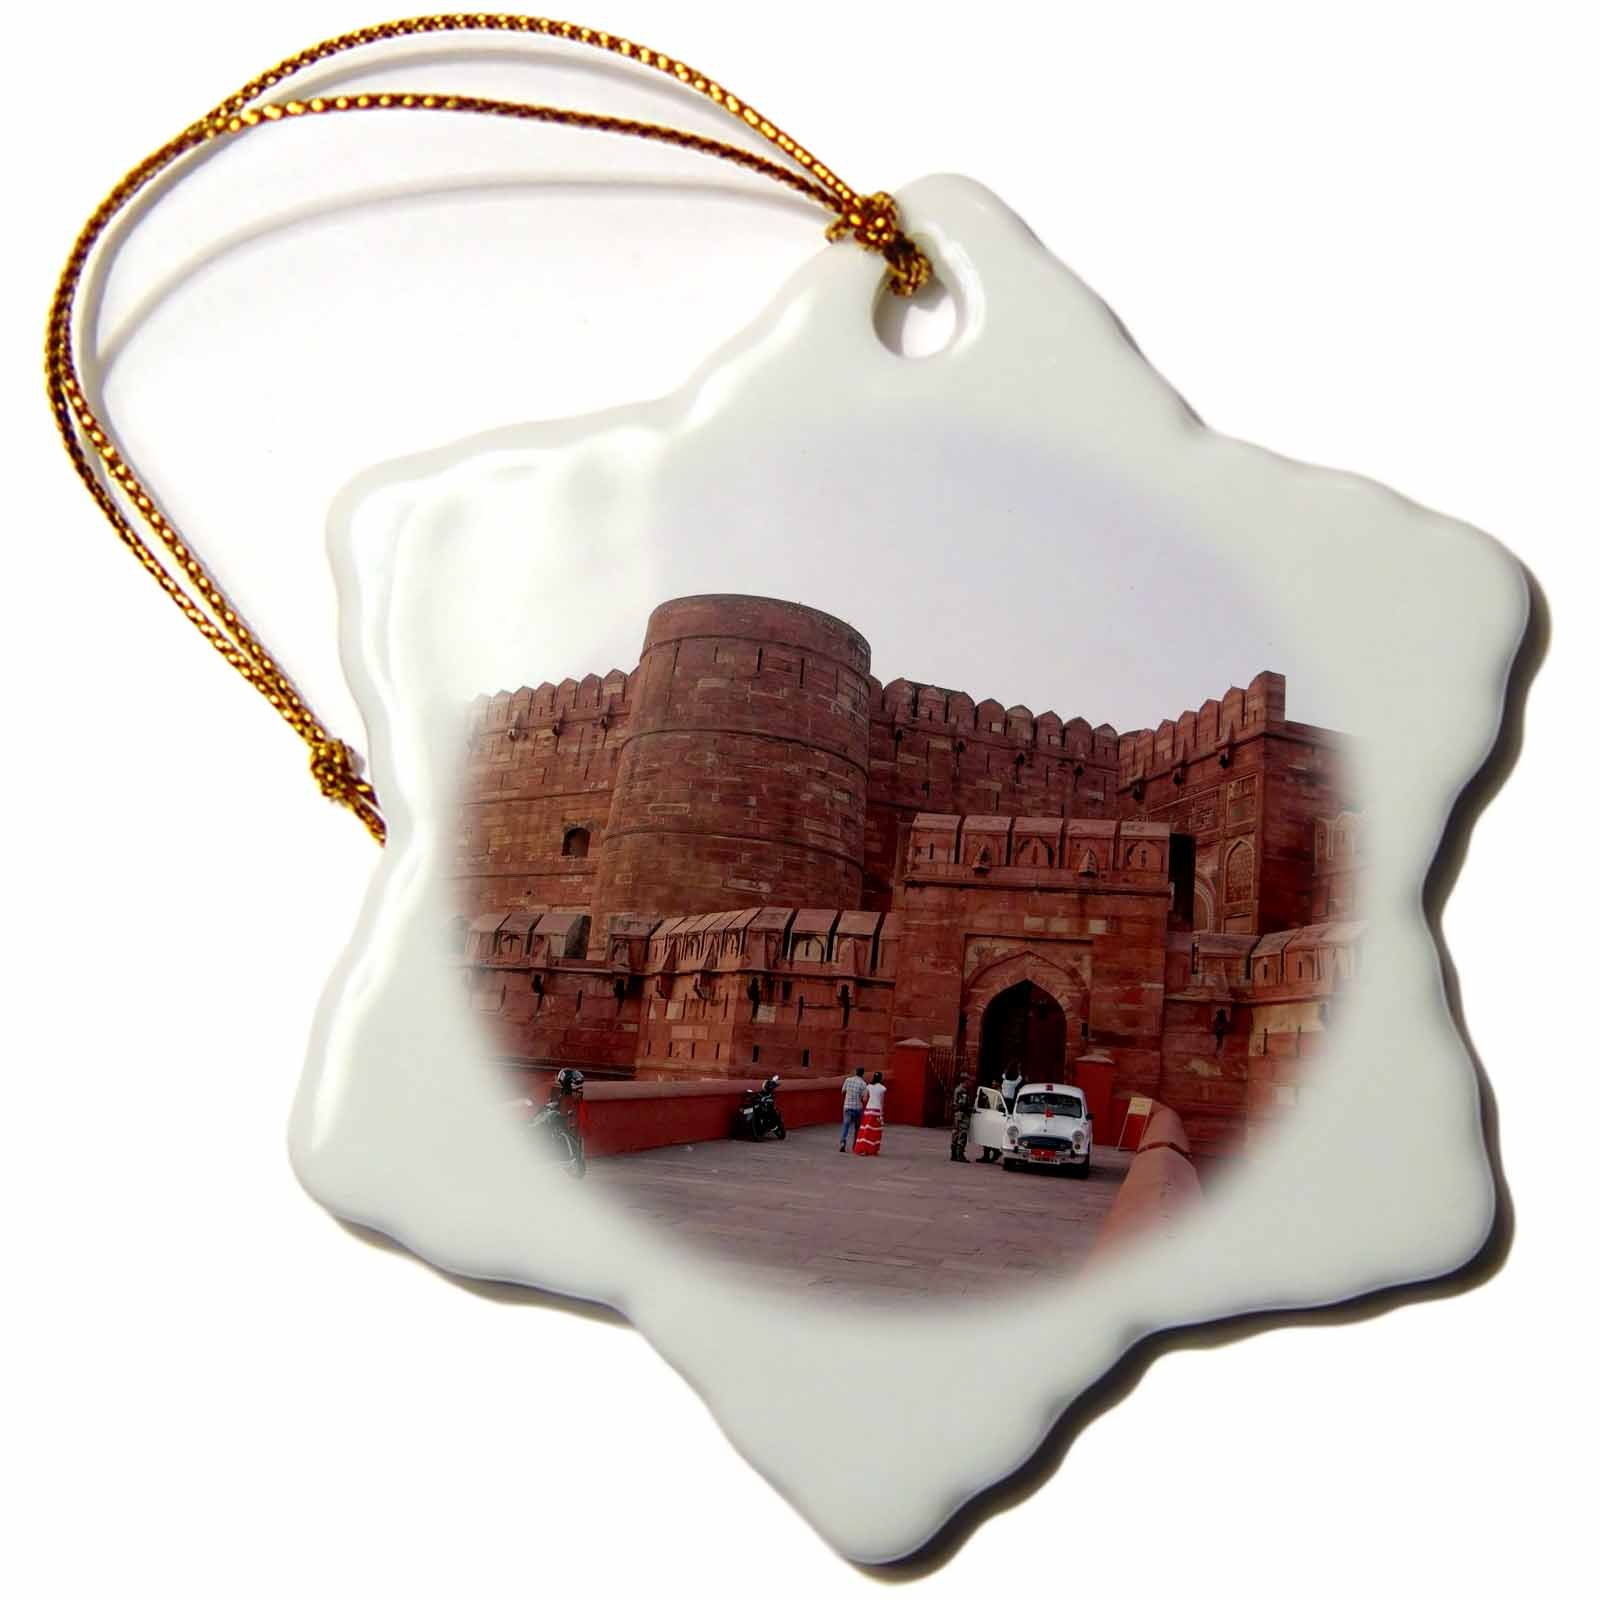 3dRose Cities Of The World - Lahore Gate In Delhi, India - 3 inch Snowflake Porcelain Ornament (orn_268656_1)